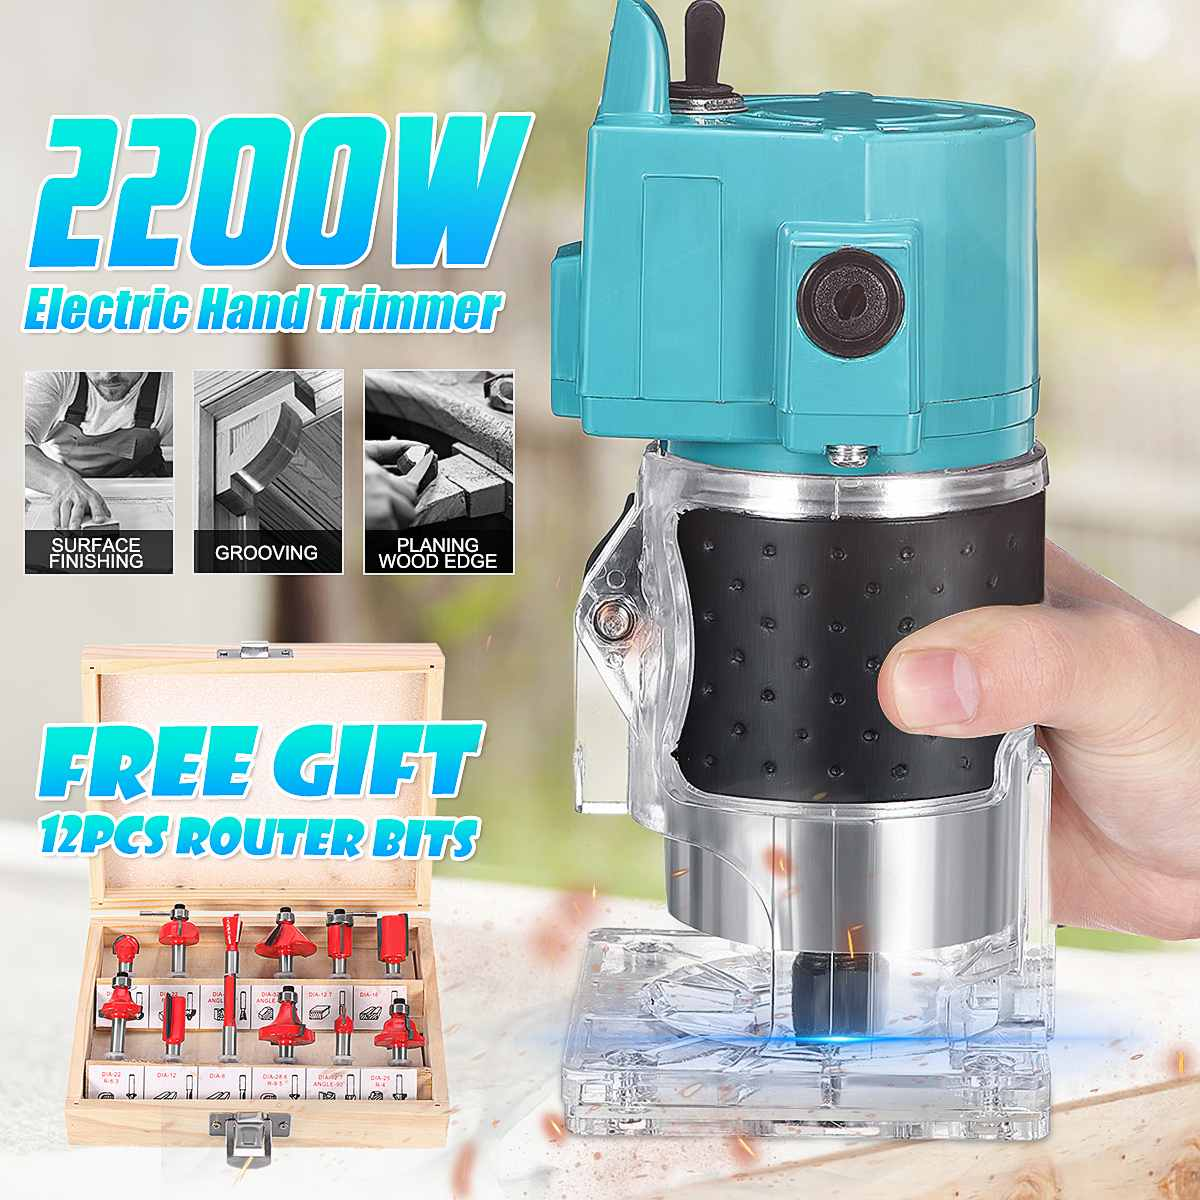 2200W Electric Trimmer Hand Wood Laminator+6.35mm 1/4'' Router Bit Set Joiner Woodworking Carving Trimming Machine Power Tool